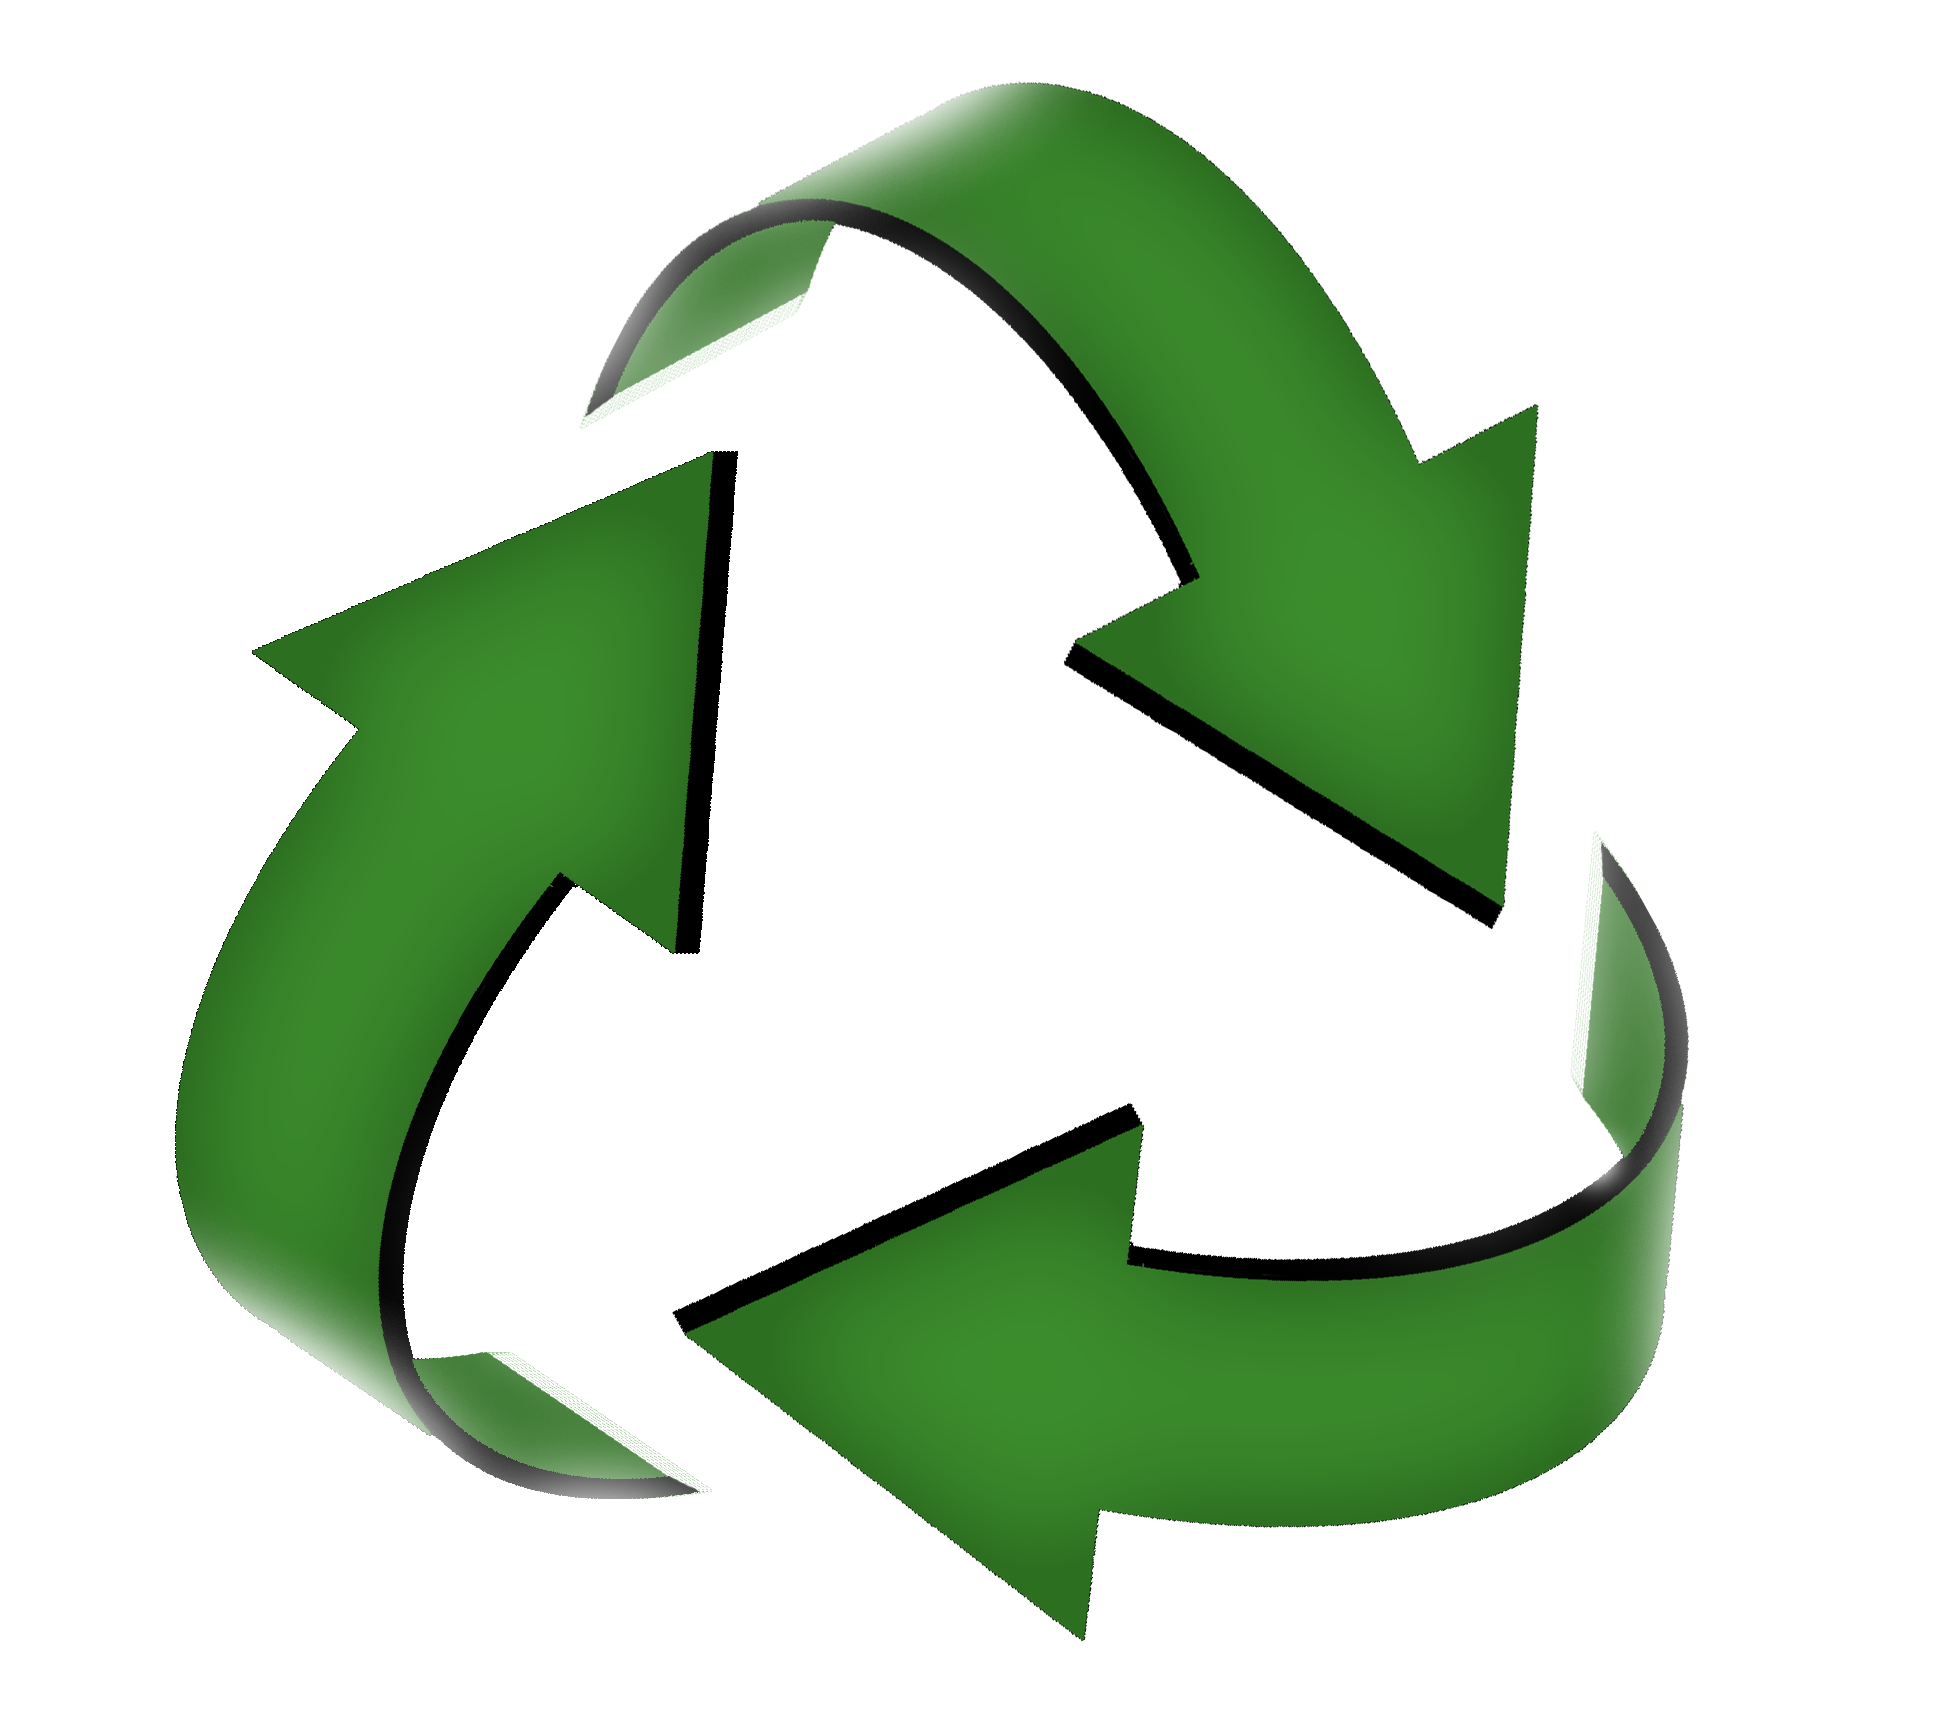 Green Day clipart recycle  Recycling Research Logo Clip